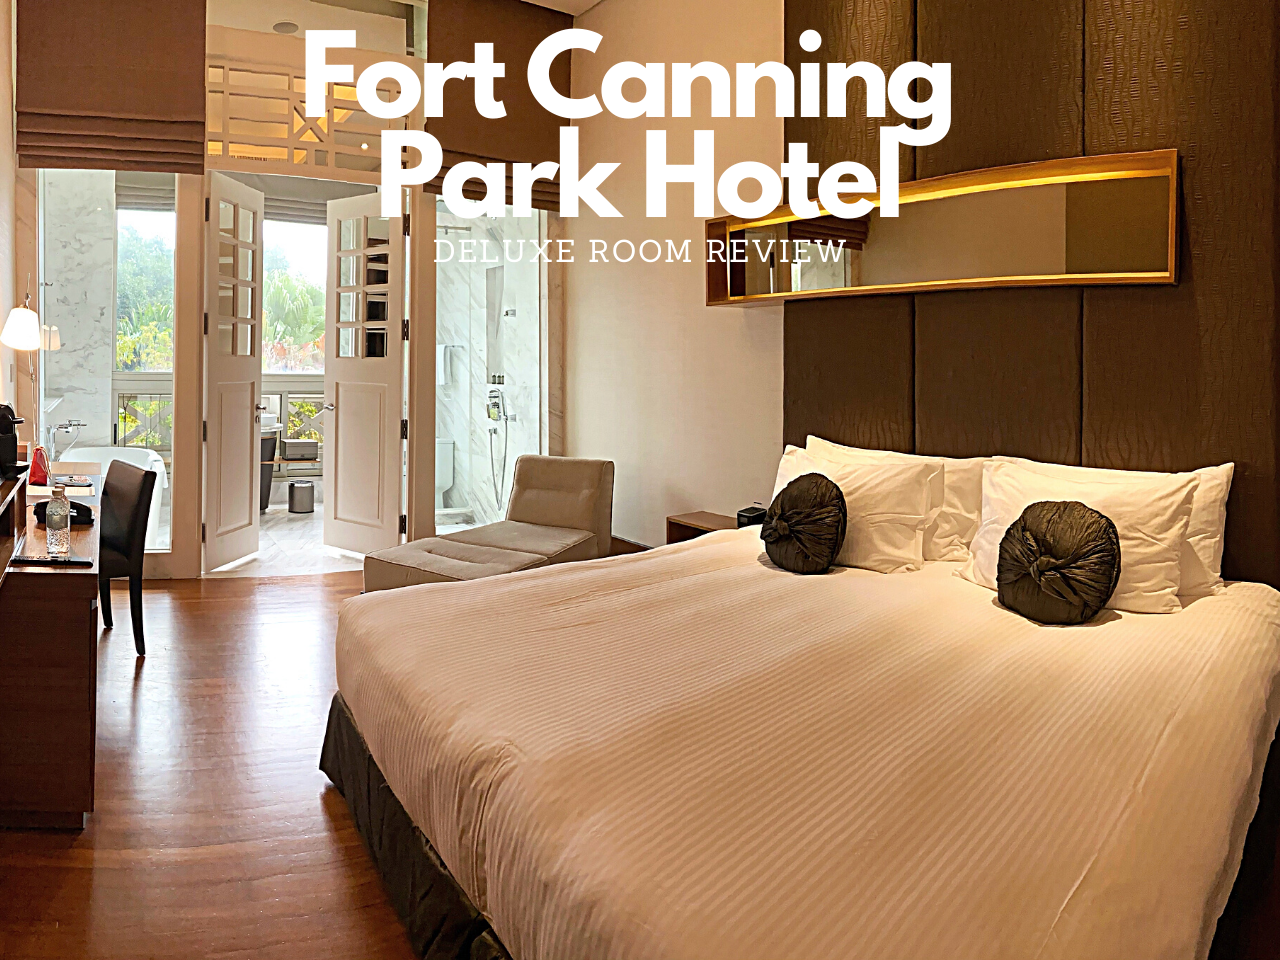 fort canning hotel deluxe room review